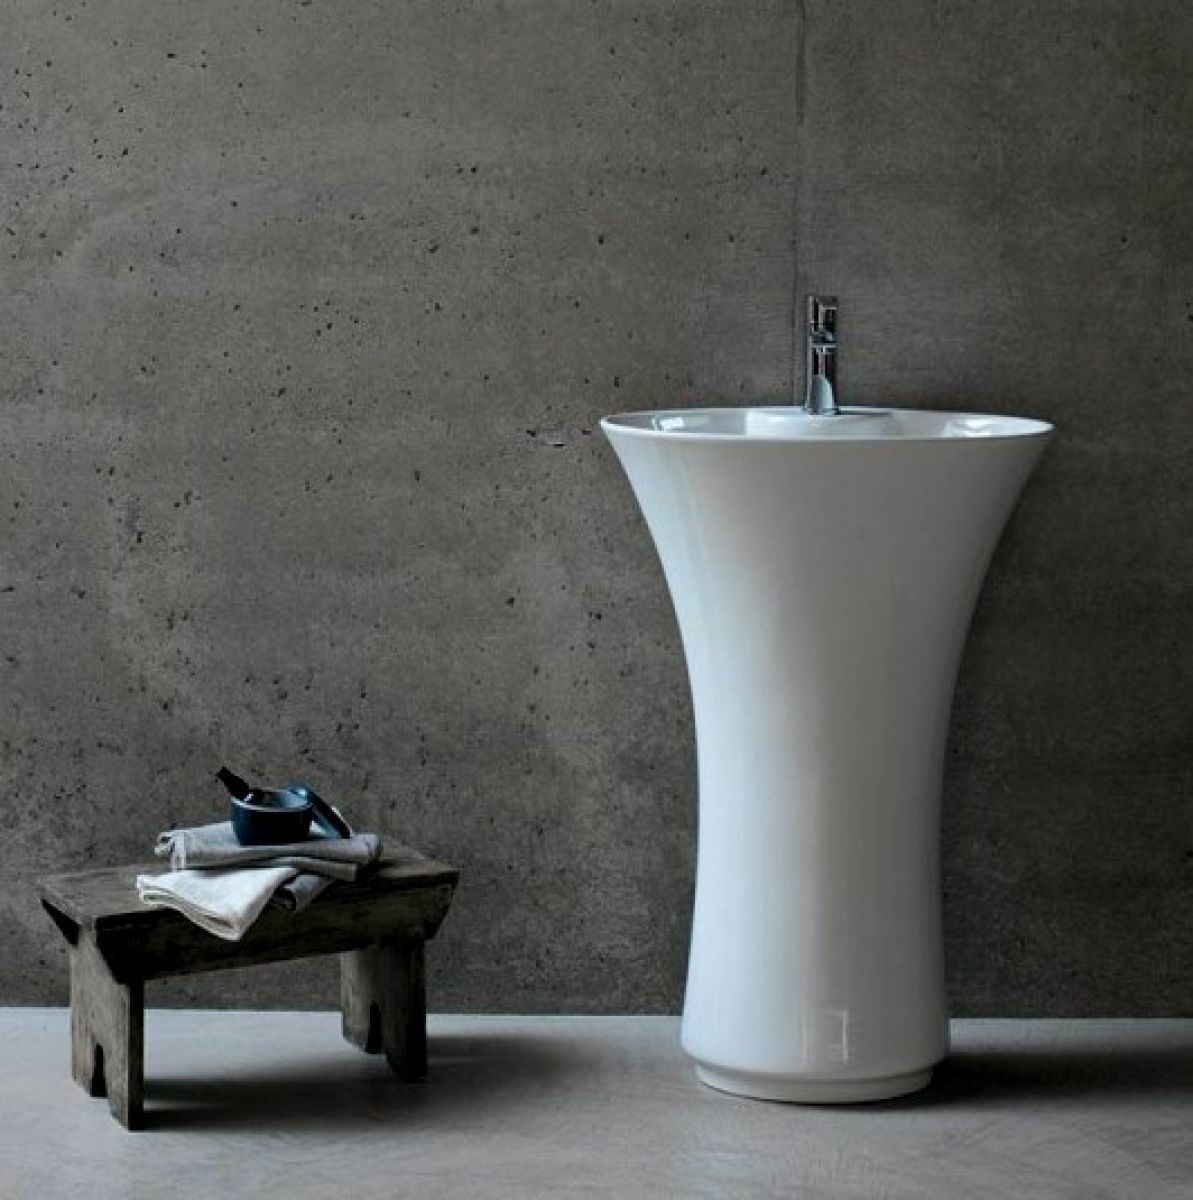 free standing sink. Britton Curve Freestanding One-piece Basin Free Standing Sink